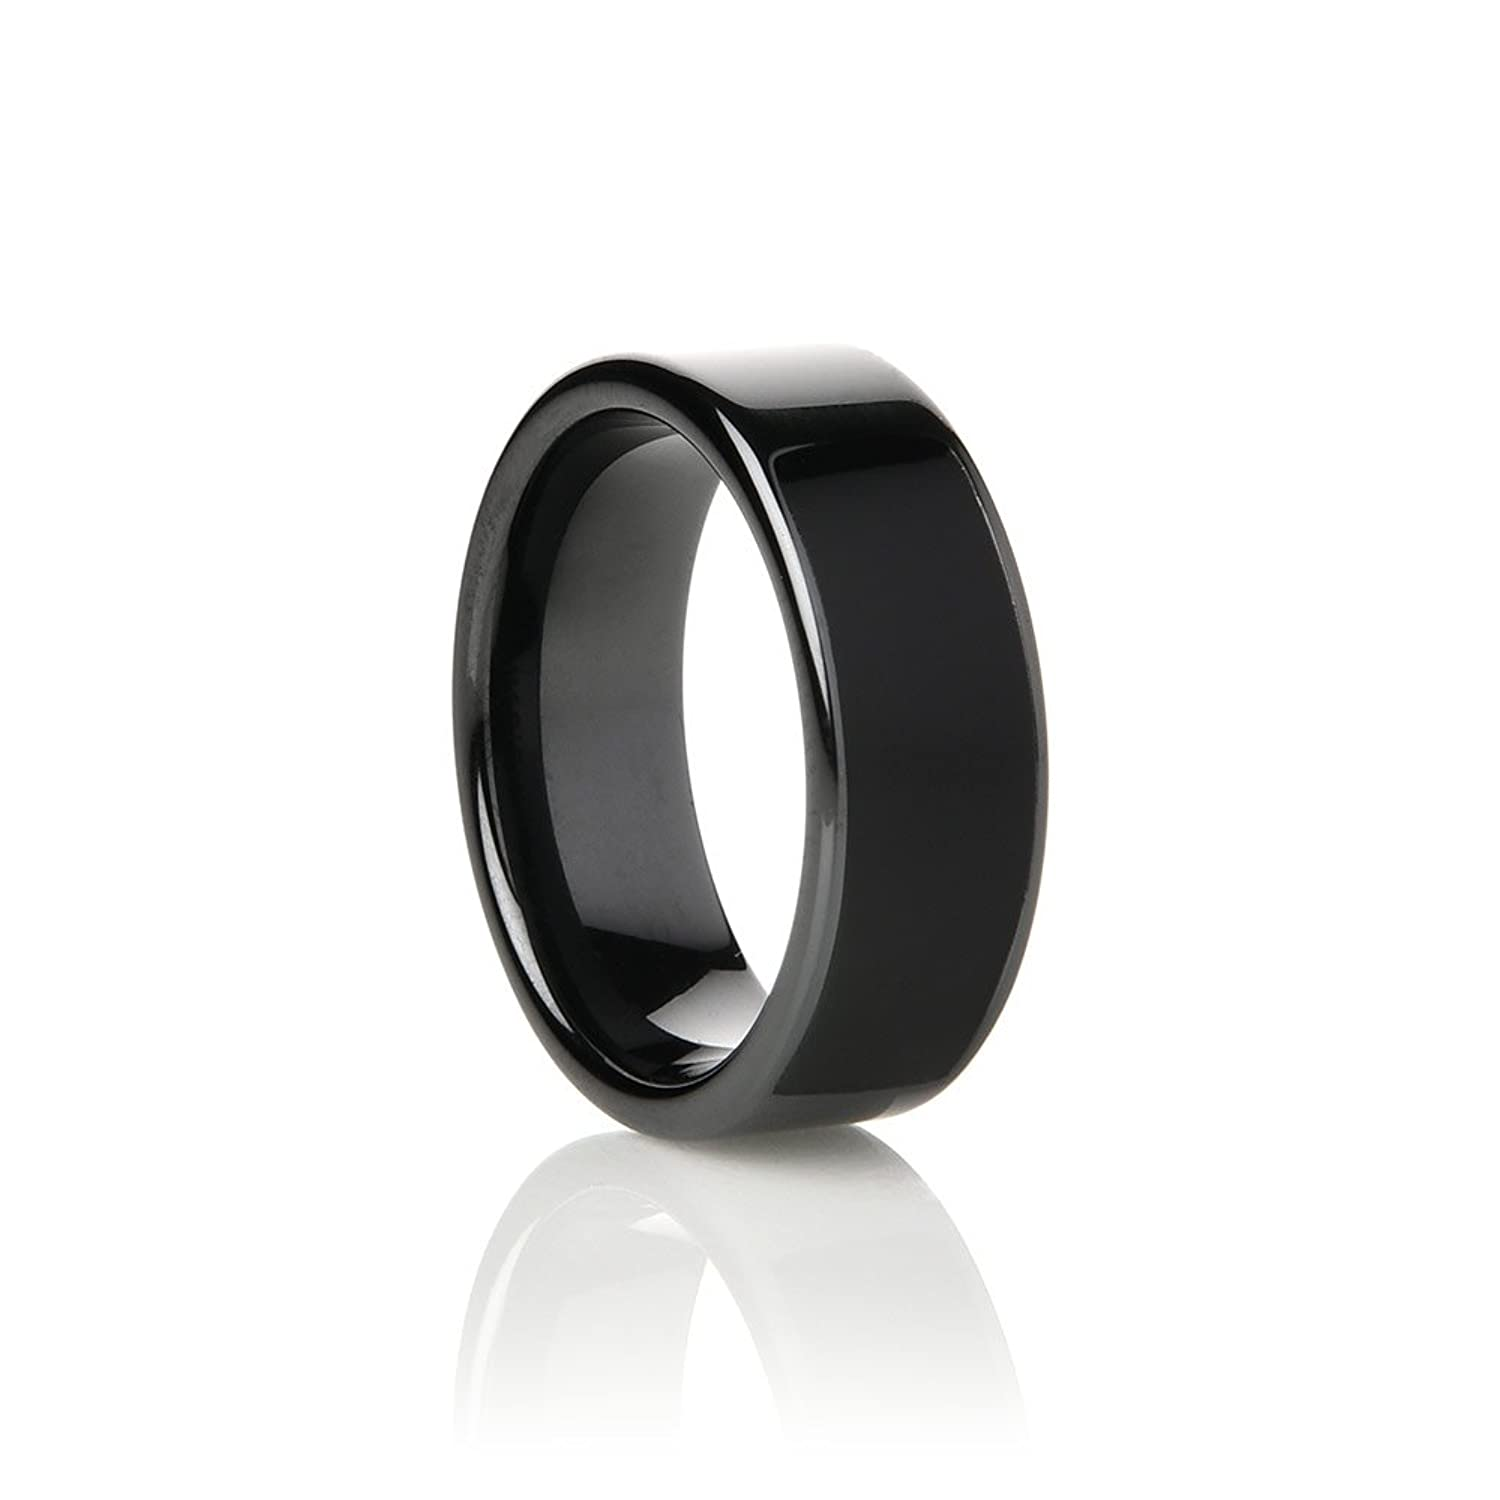 south ceramic sea pearl paspaley black products fine rings odyssey ring jewellery